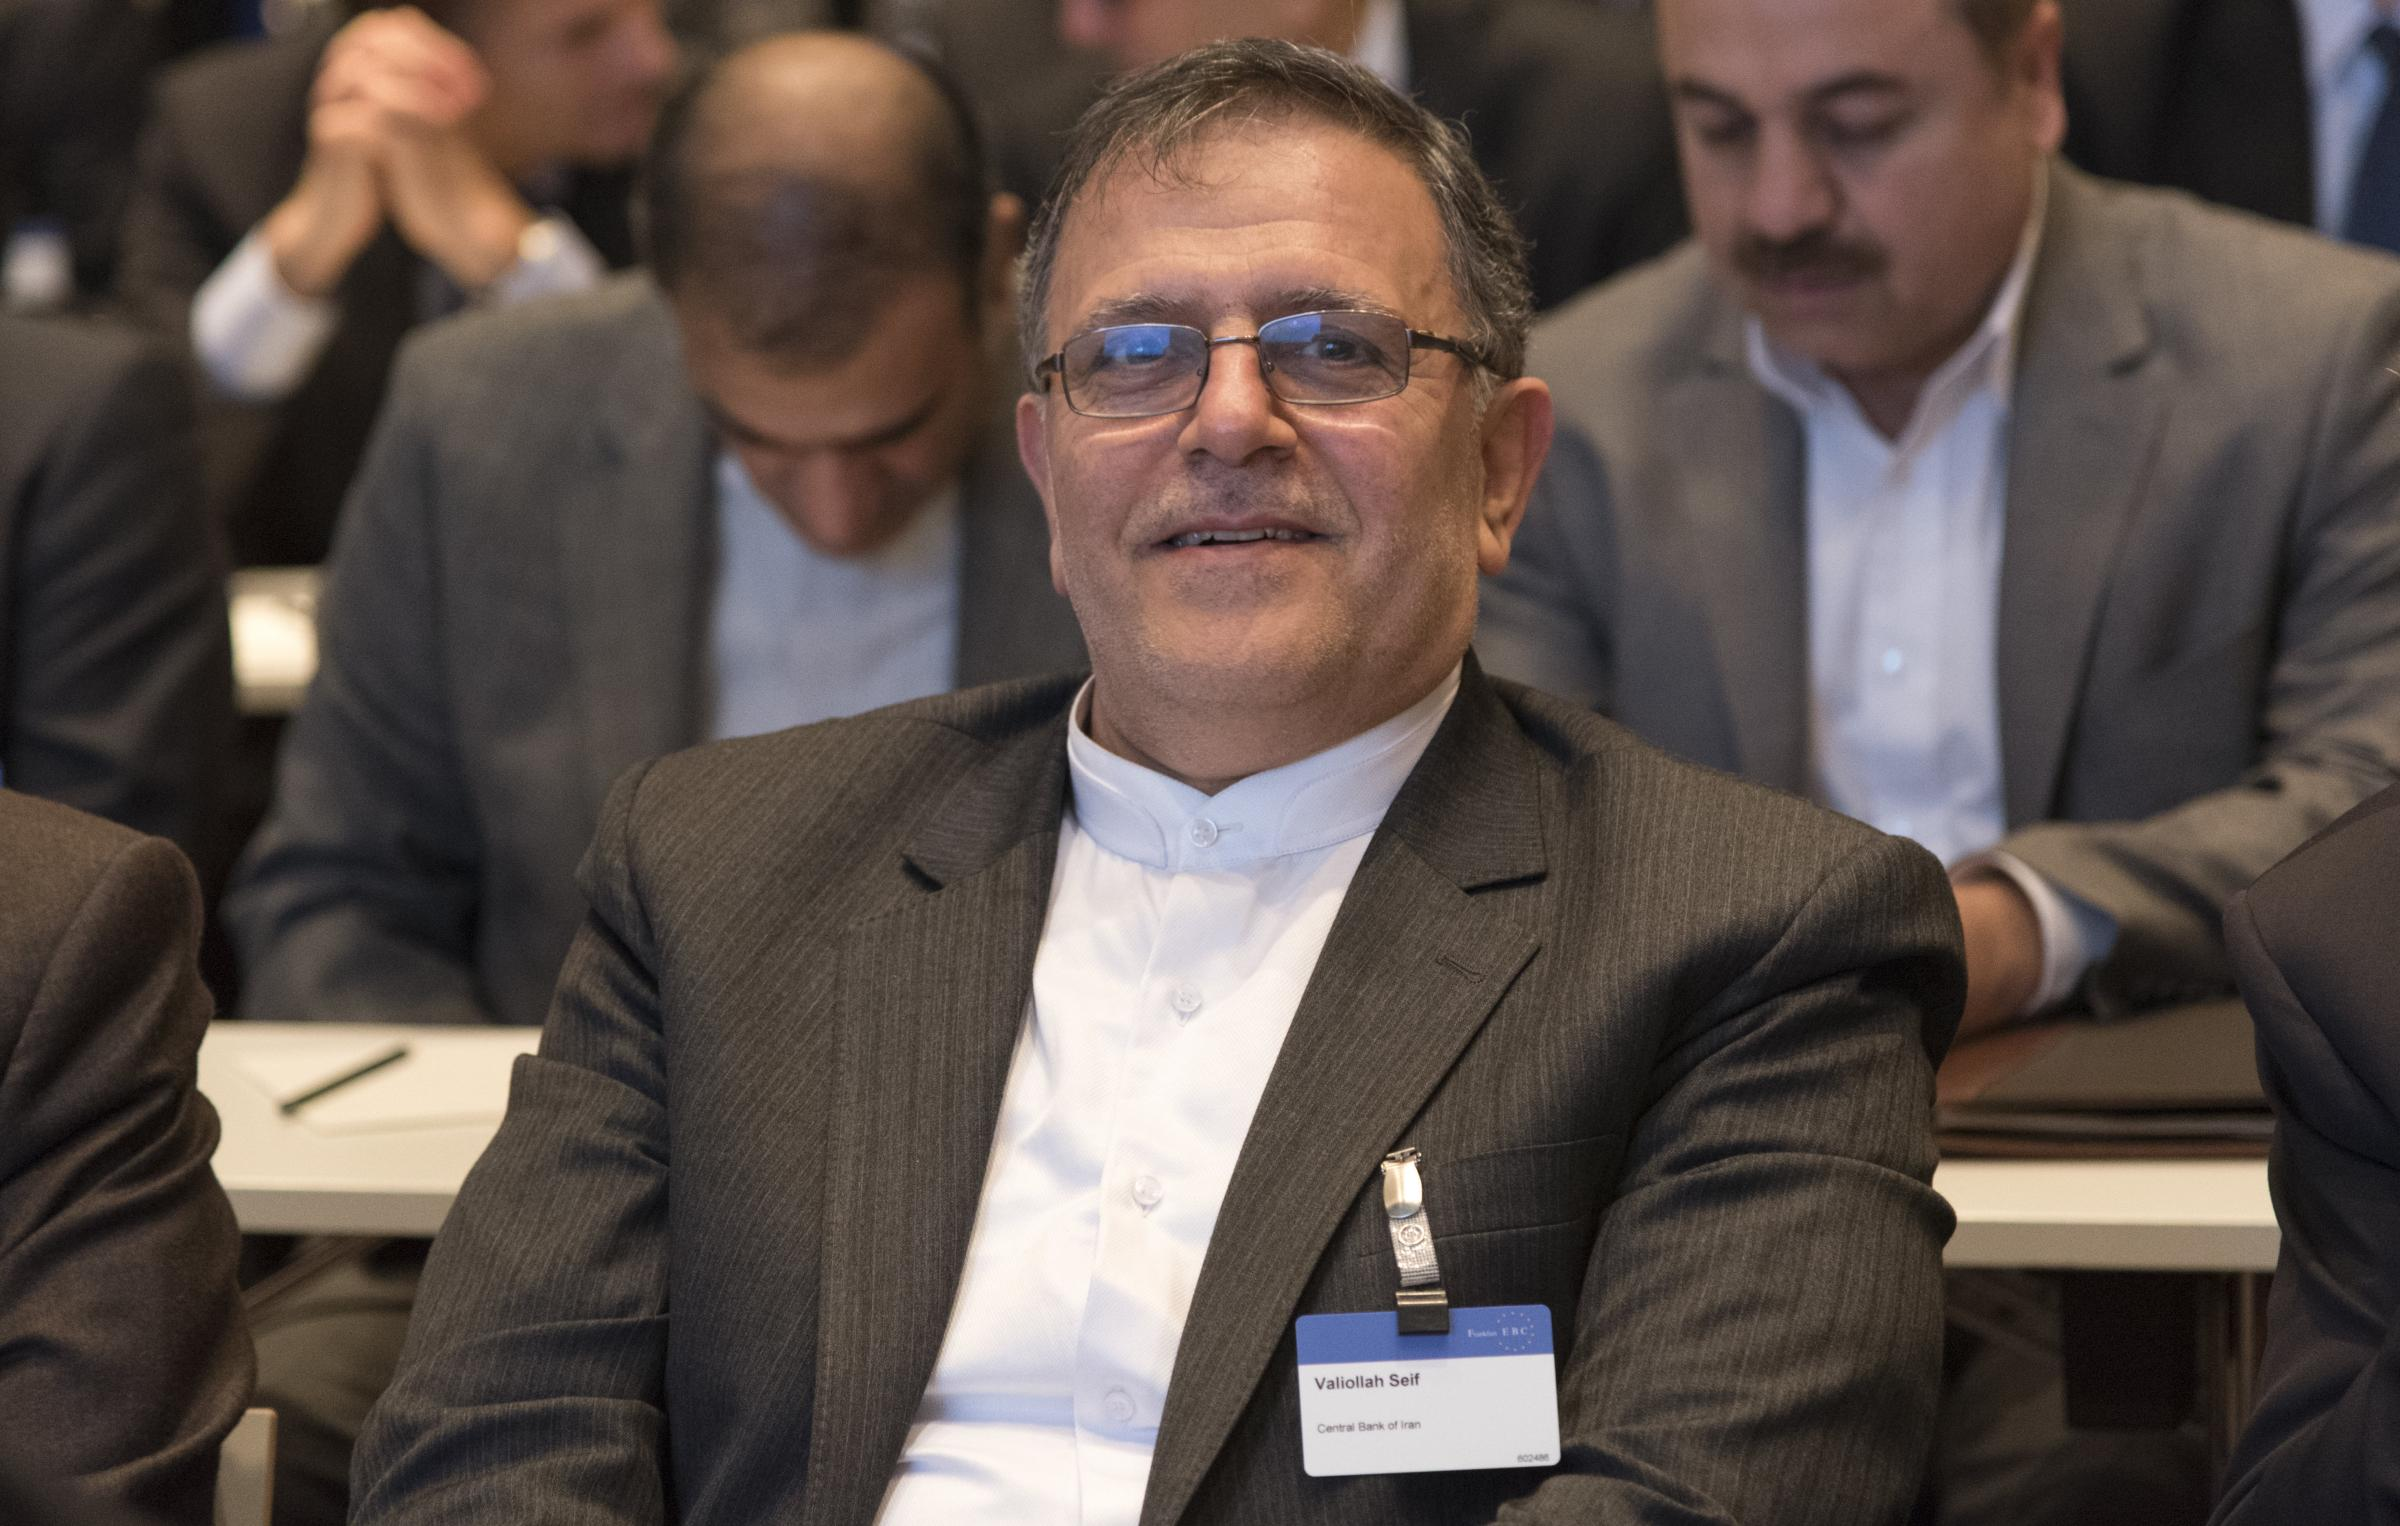 Valiollah Seif is the governor of the Iranian central bank